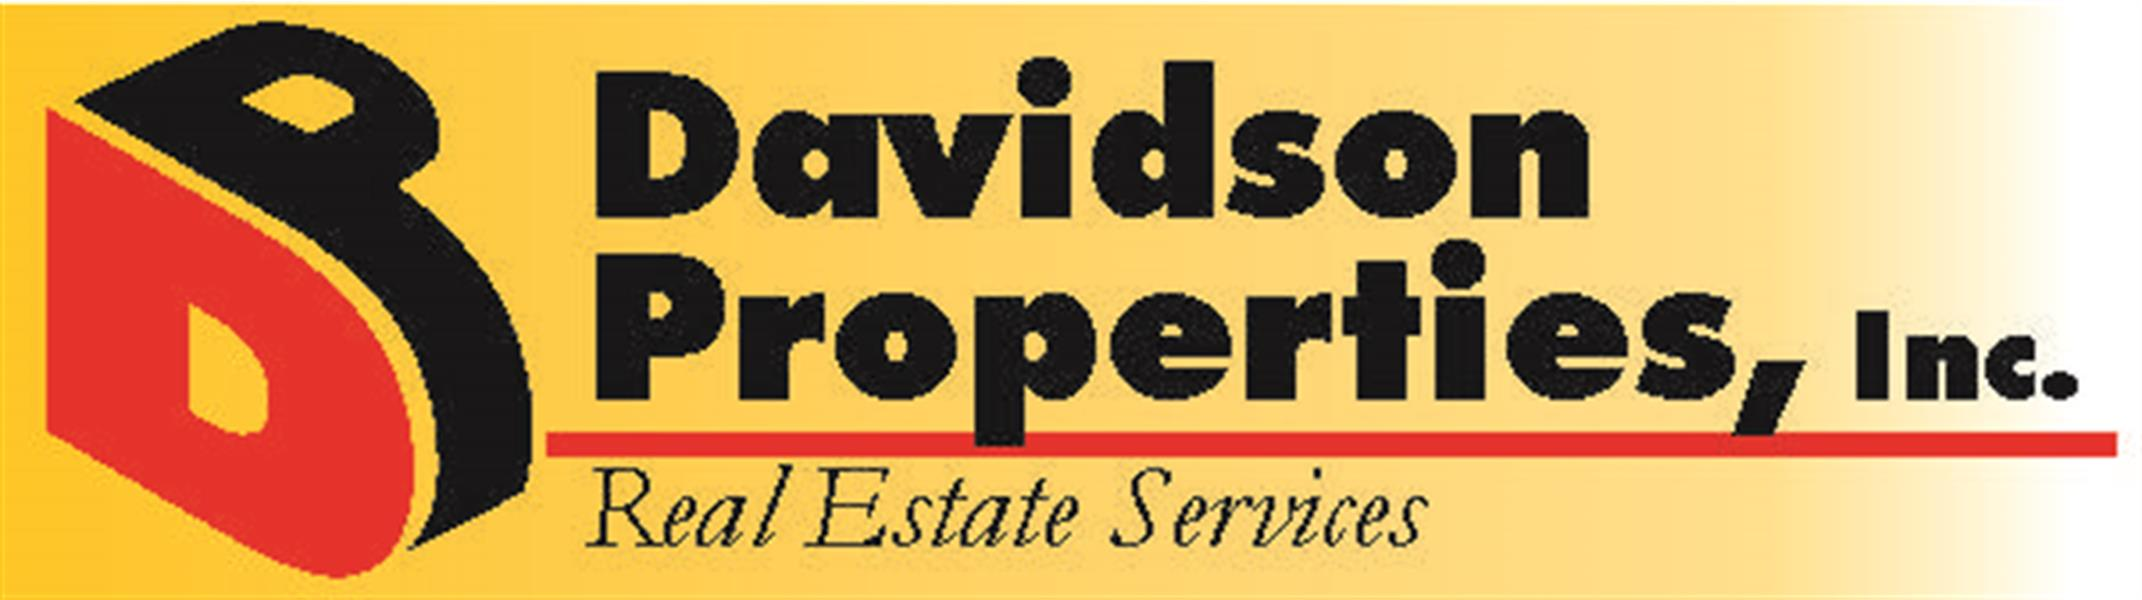 Davidson Properties, Inc.